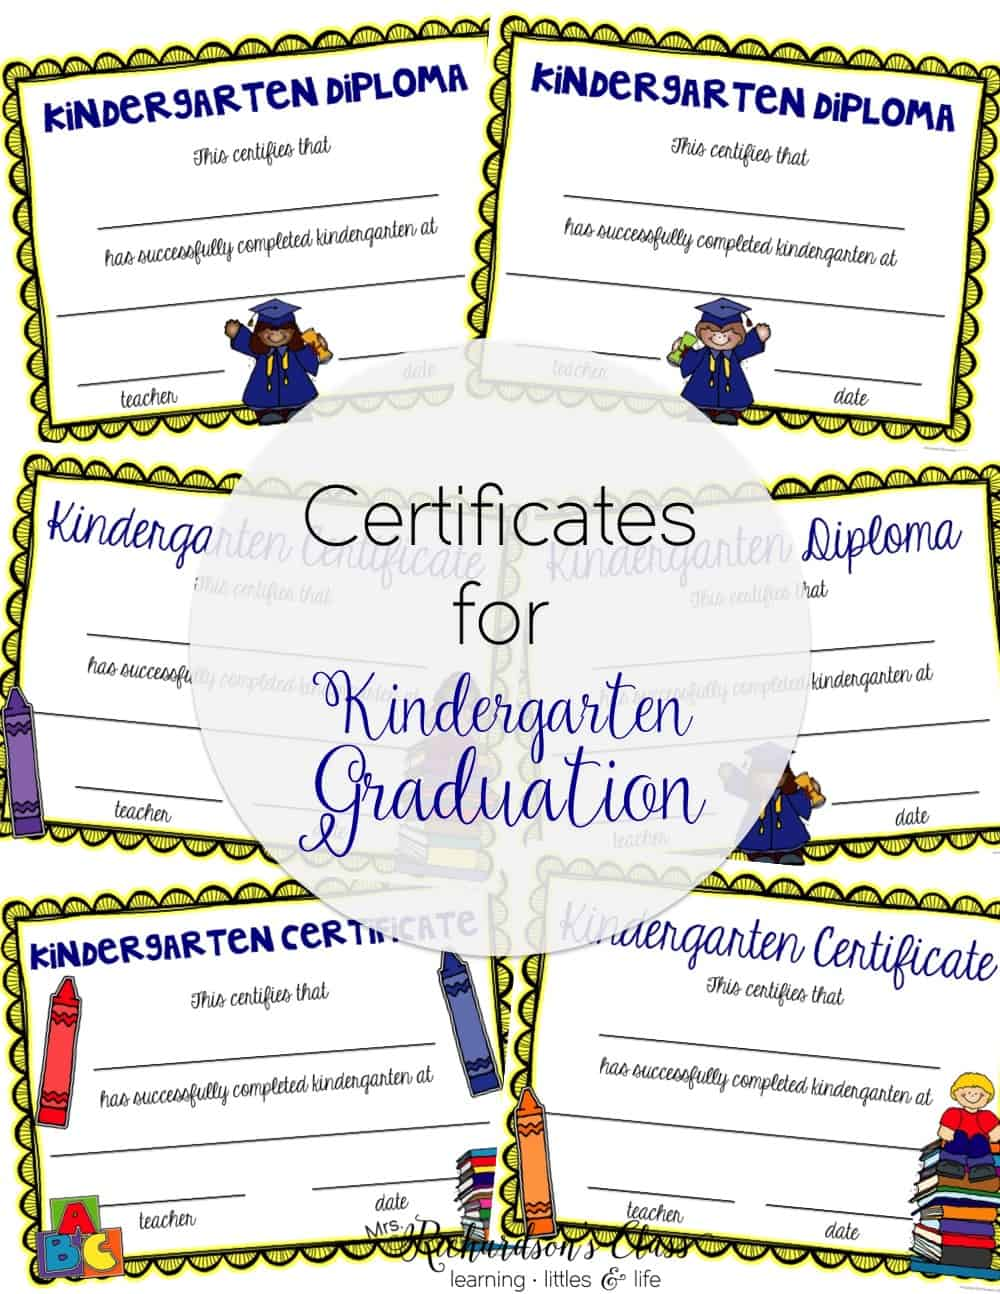 Make kindergarden graduation simple with these editable graduation diplomas and certificates.